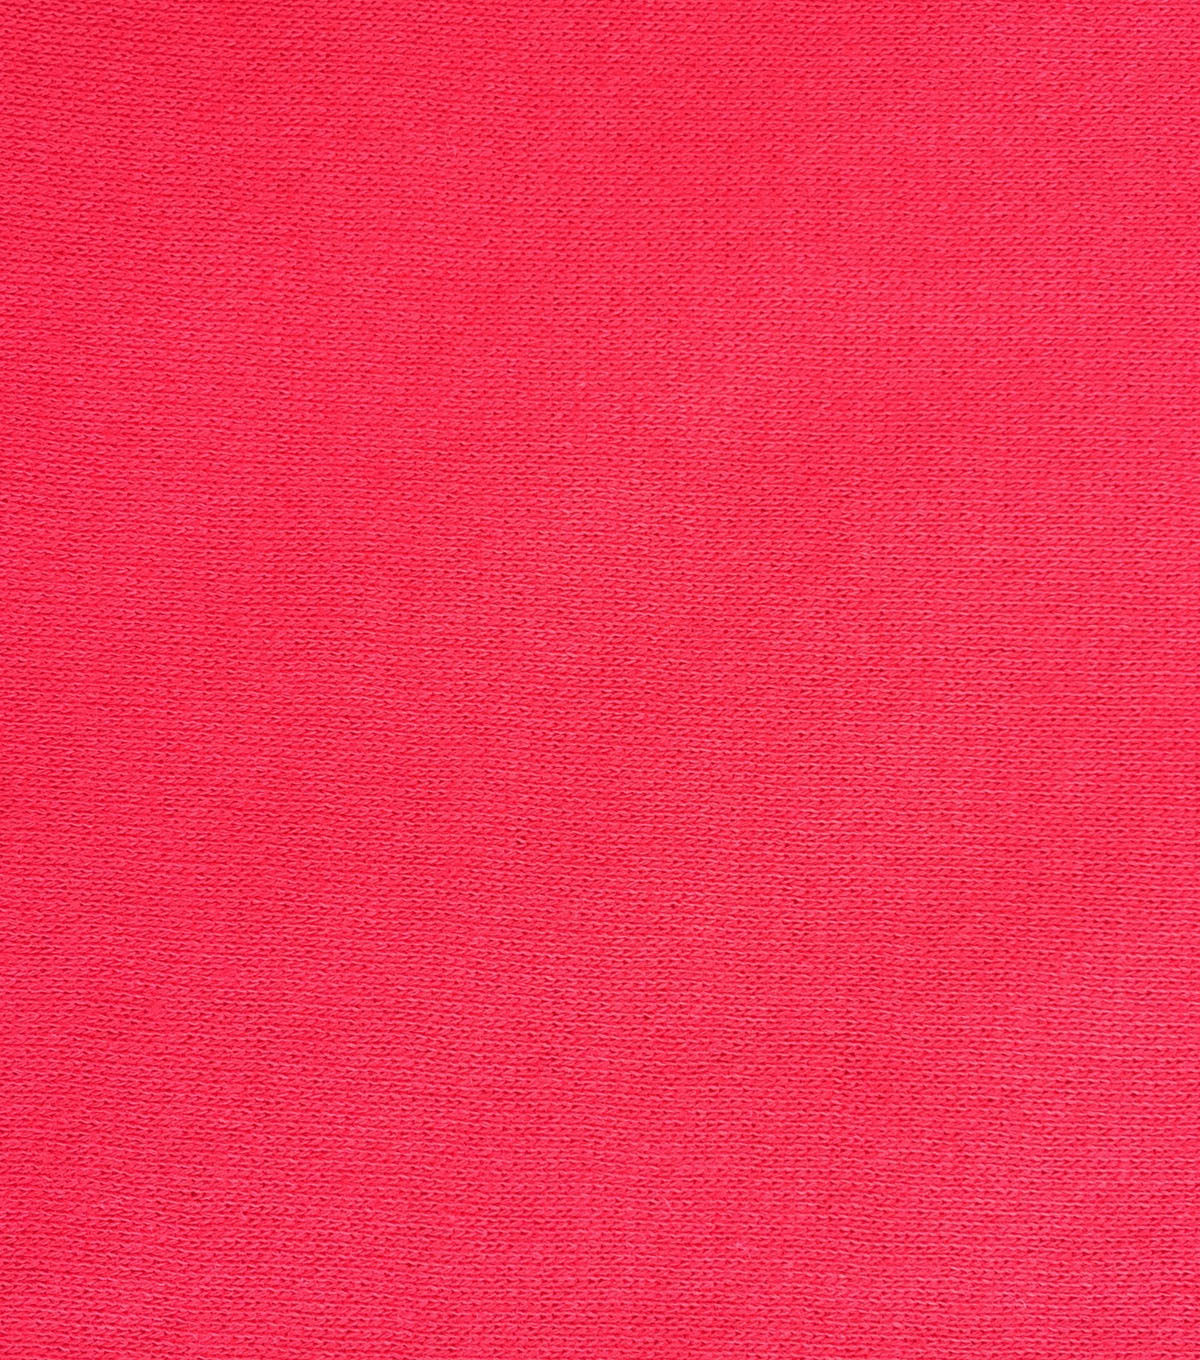 "Sweatshirt Fleece Fabric 59.3""-Red Sweatshirt"